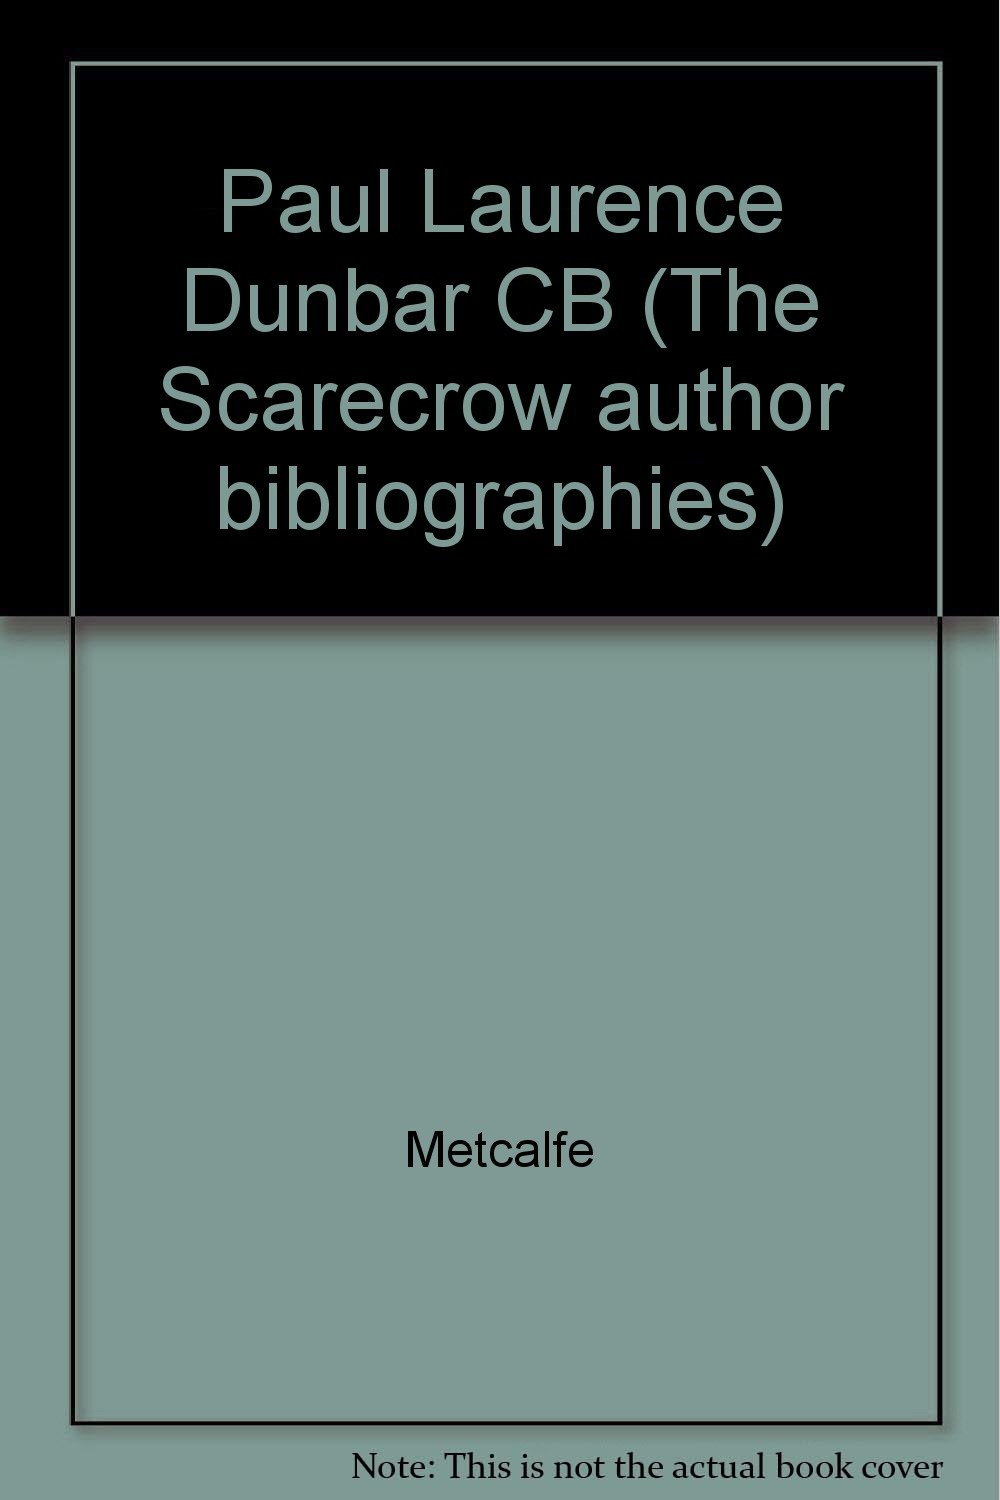 Paul Laurence Dunbar CB (The Scarecrow author bibliographies ; no. 23) ebook